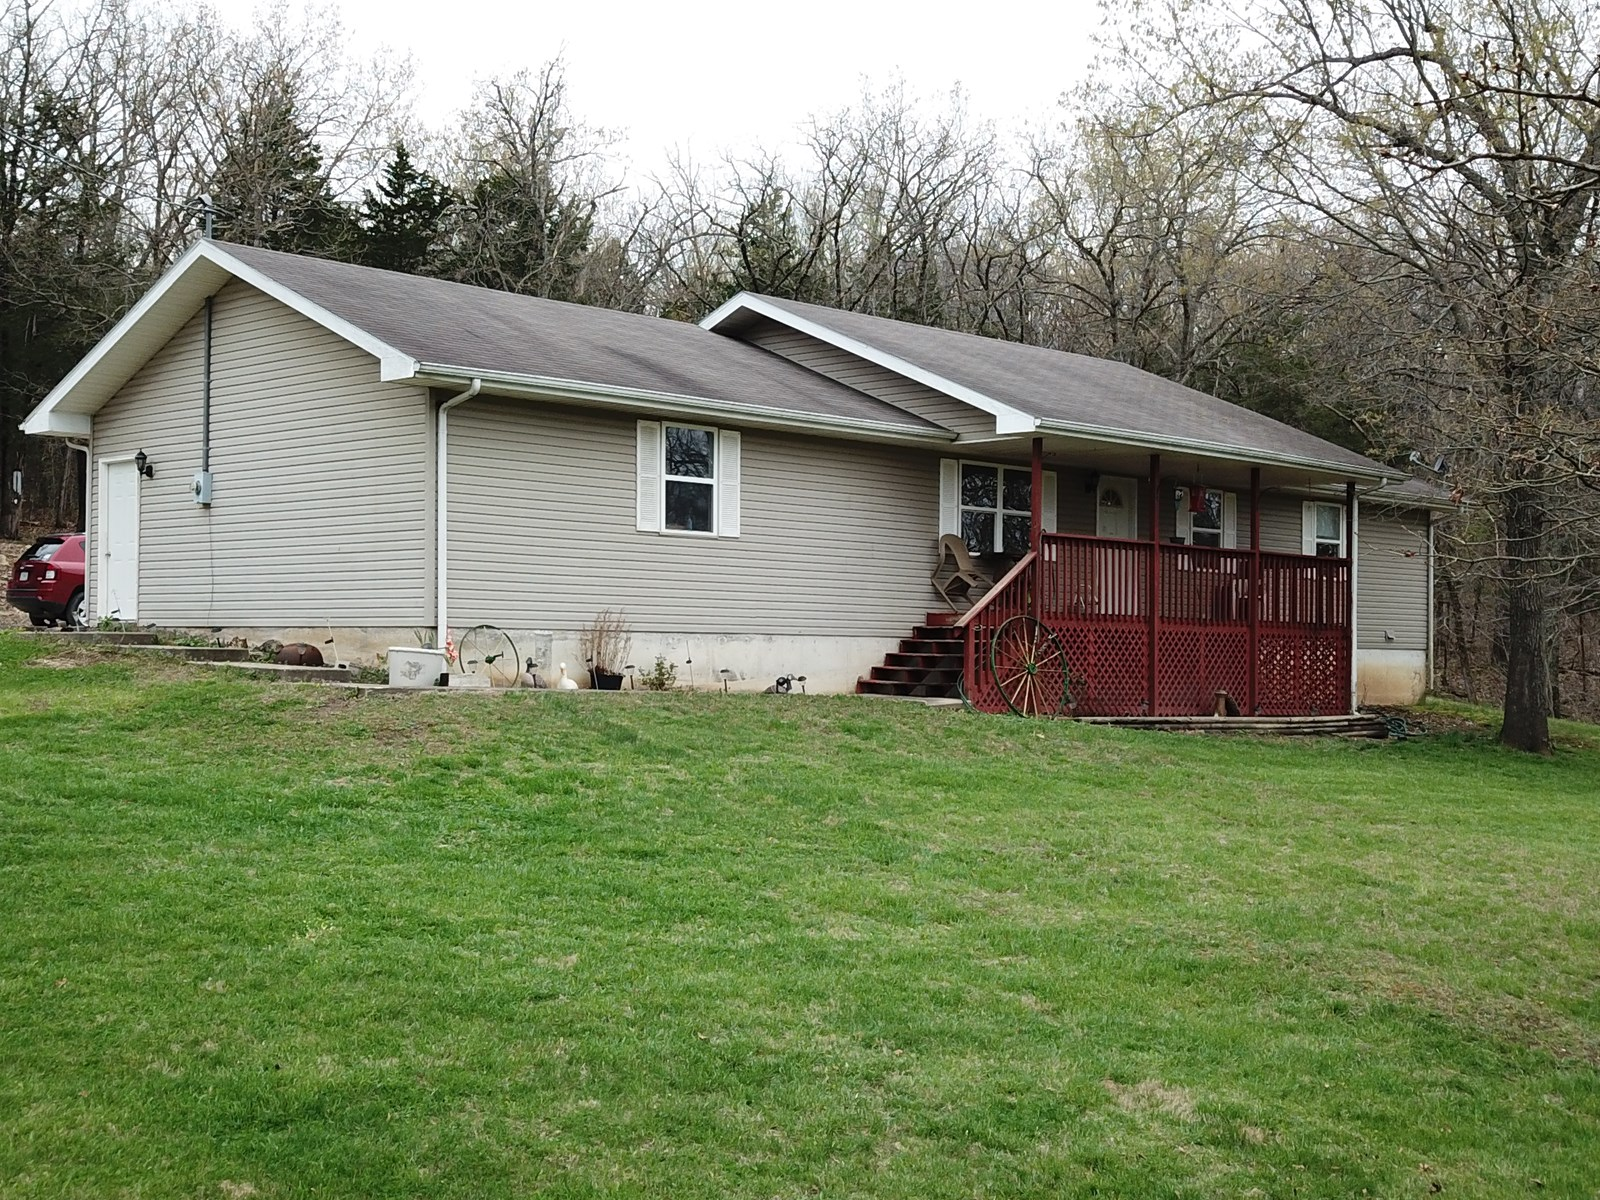 Home for Sale on 3.4 acres, Hermitage, MO Hickory County